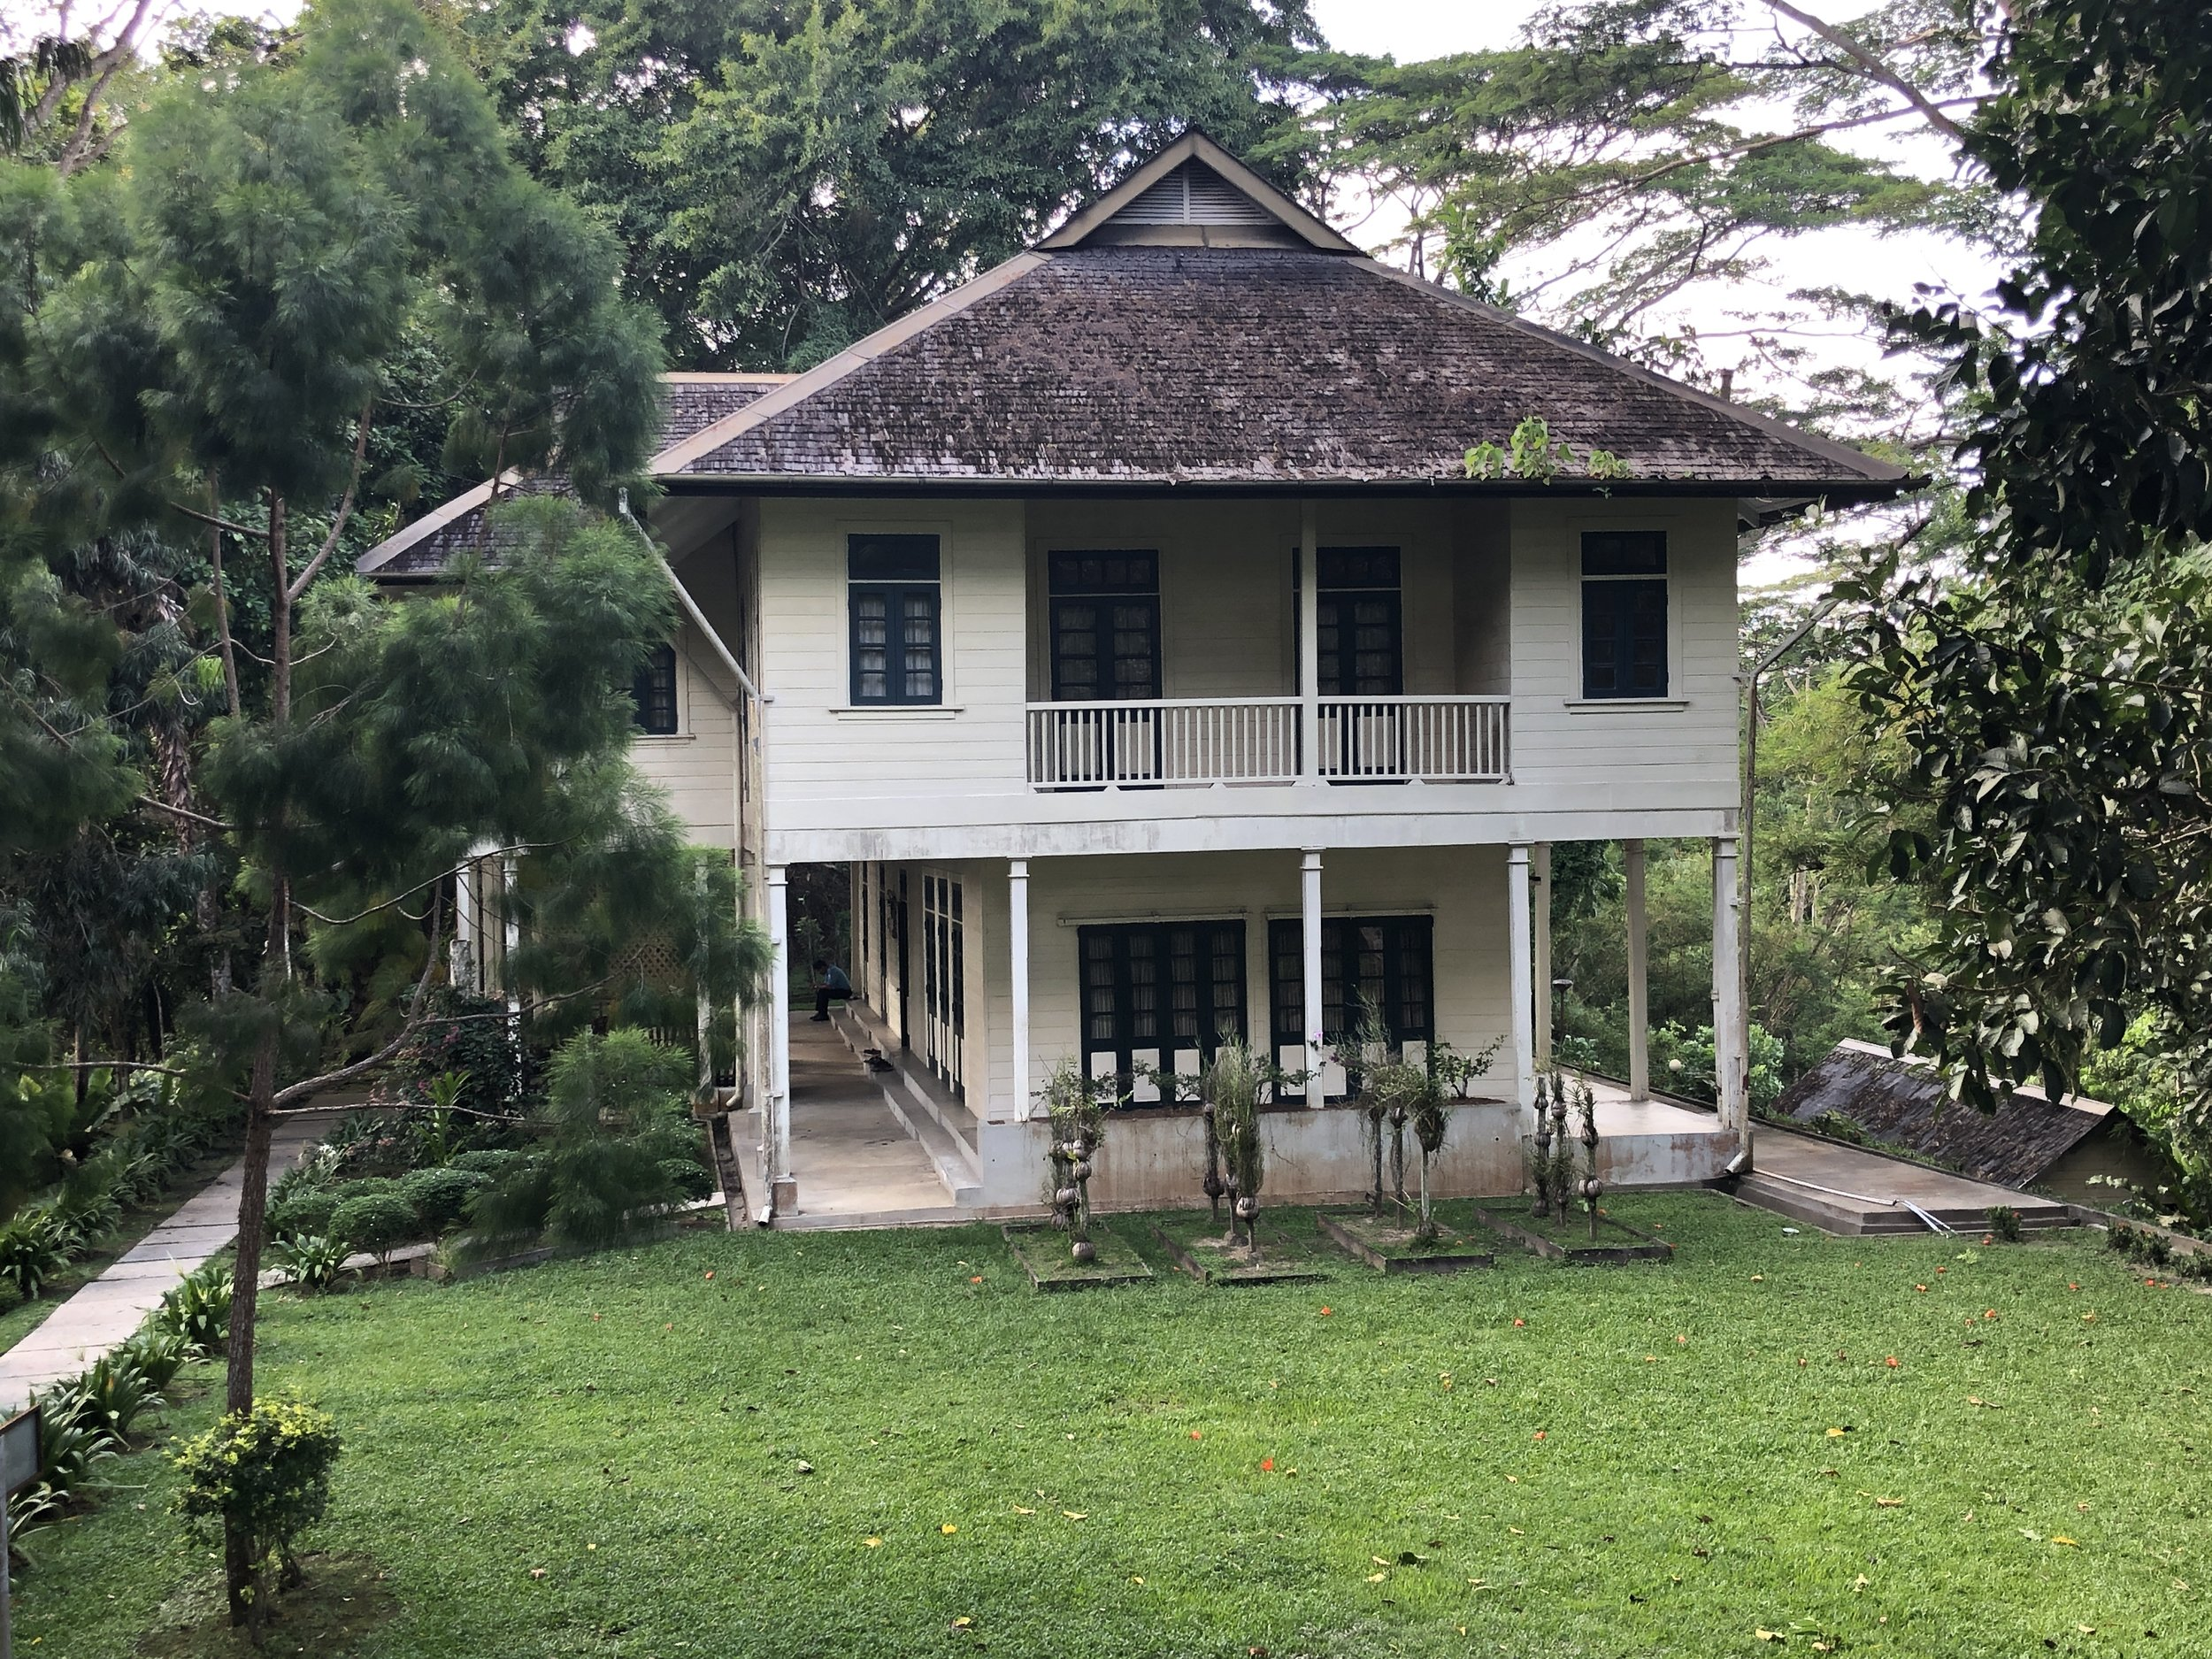 Agnes Keith House in Sandakan and the home where she wrote her trilogy of books about life in post-war colonial North Borneo